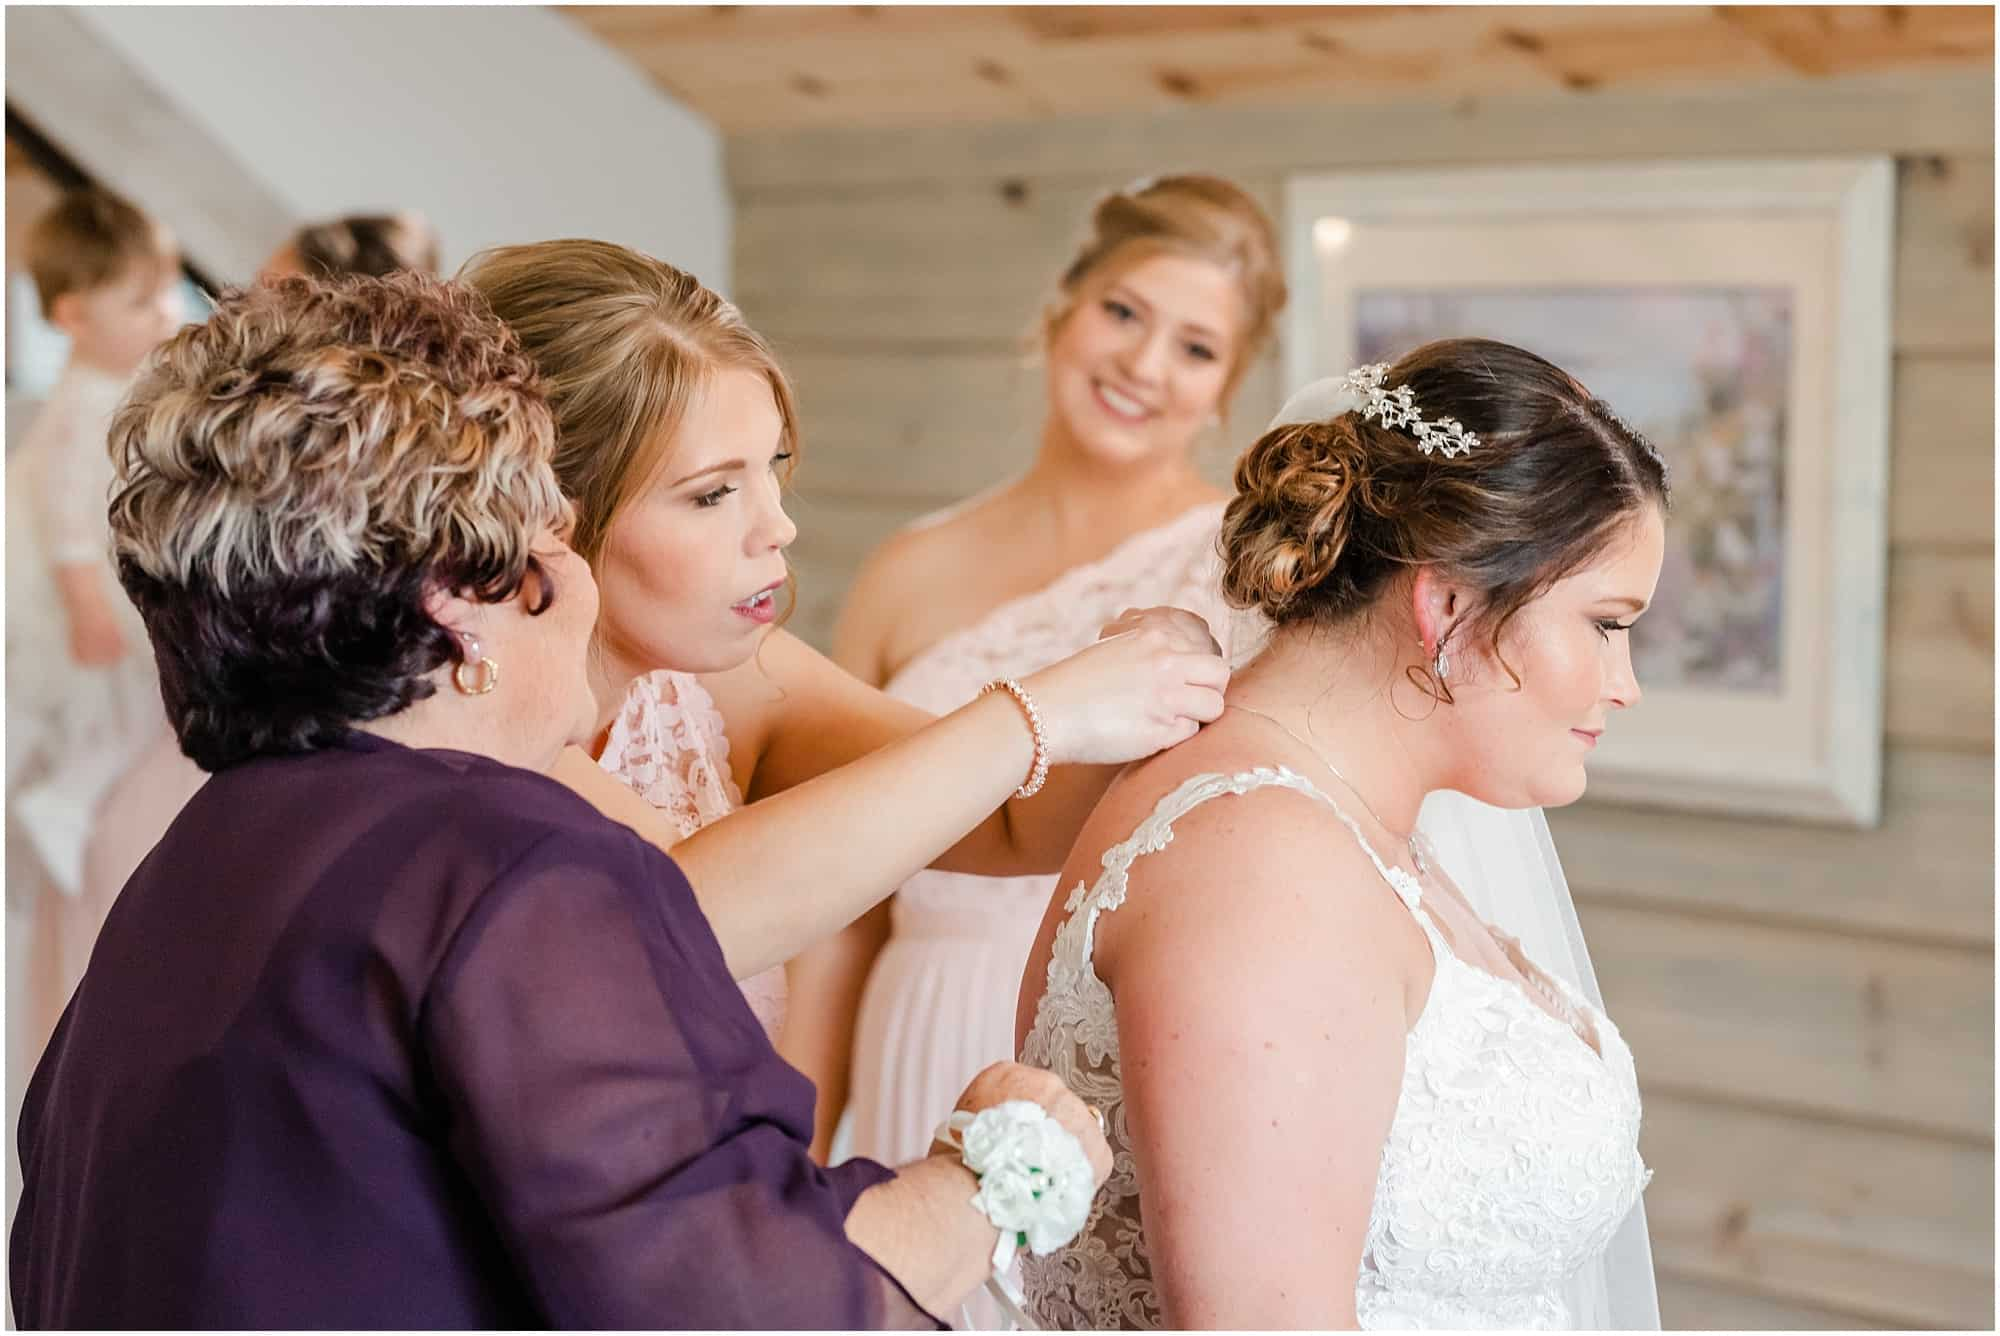 mother and bridesmaid helping bride